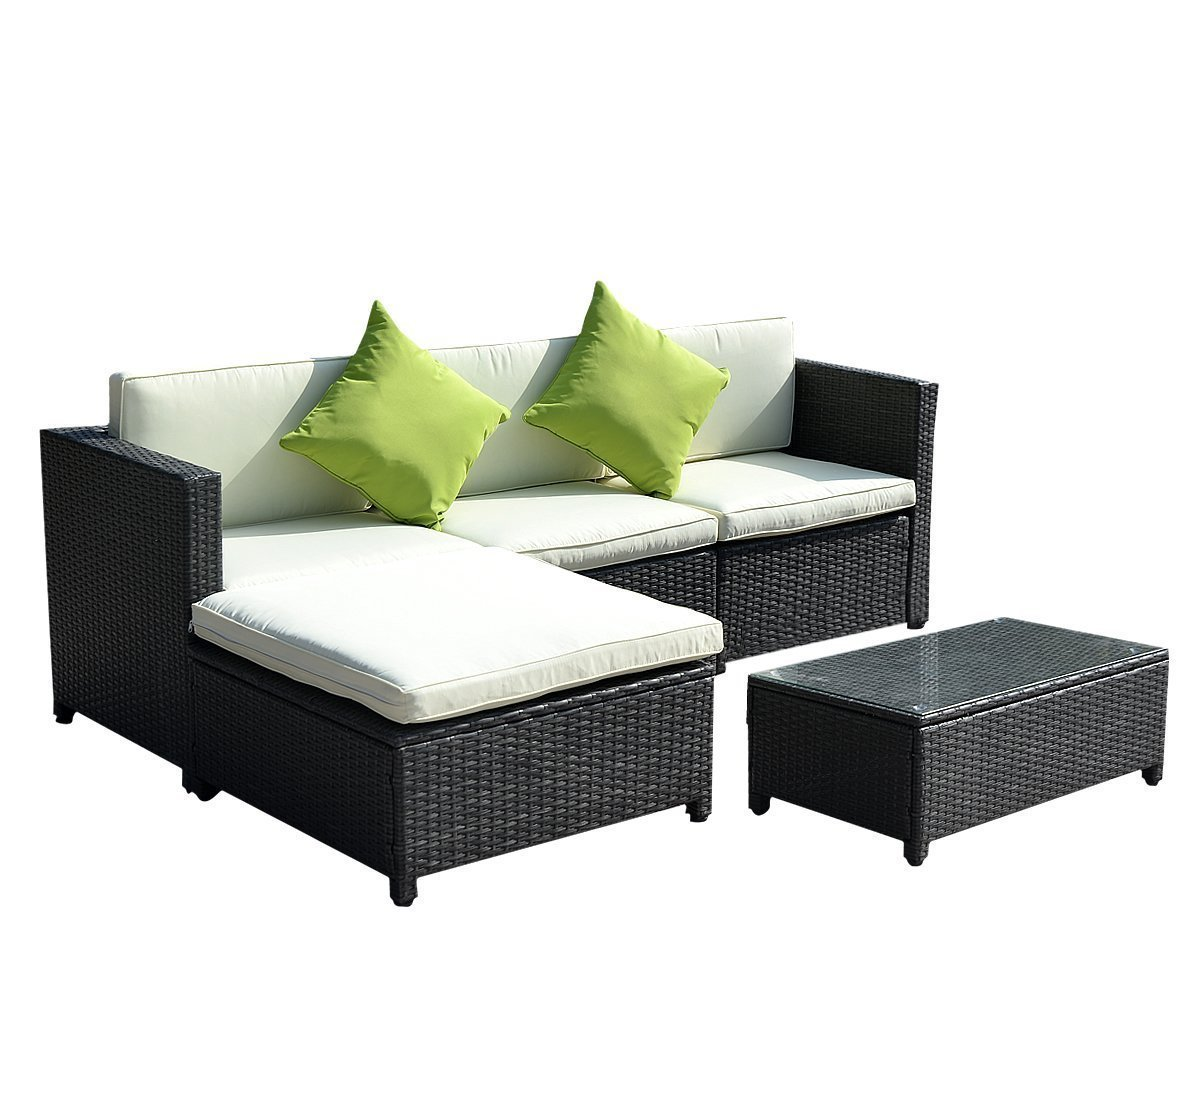 Amazon.com: Goplus® Outdoor Patio 5PC Furniture Sectional PE Wicker Rattan  Sofa Set Deck Couch Black: Garden U0026 Outdoor